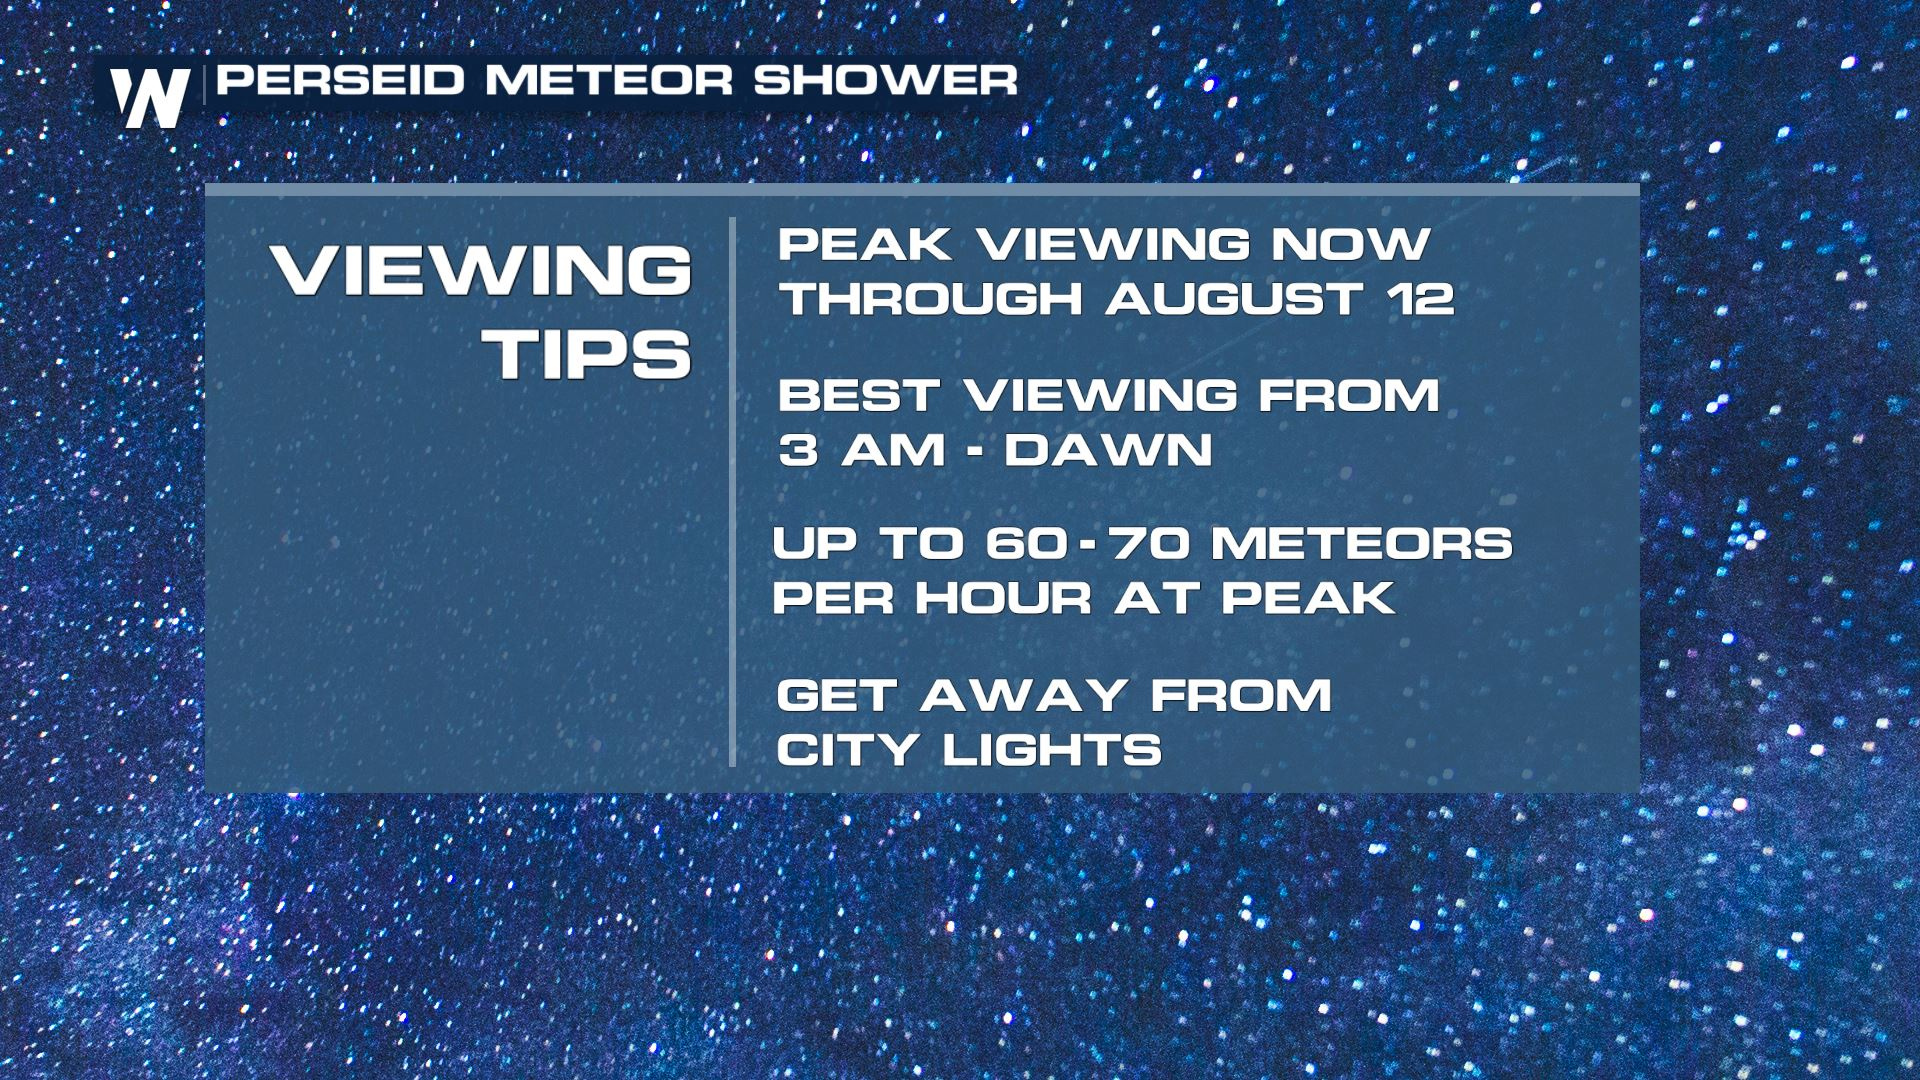 Need A Wish to Come True? Look to the Night Sky!